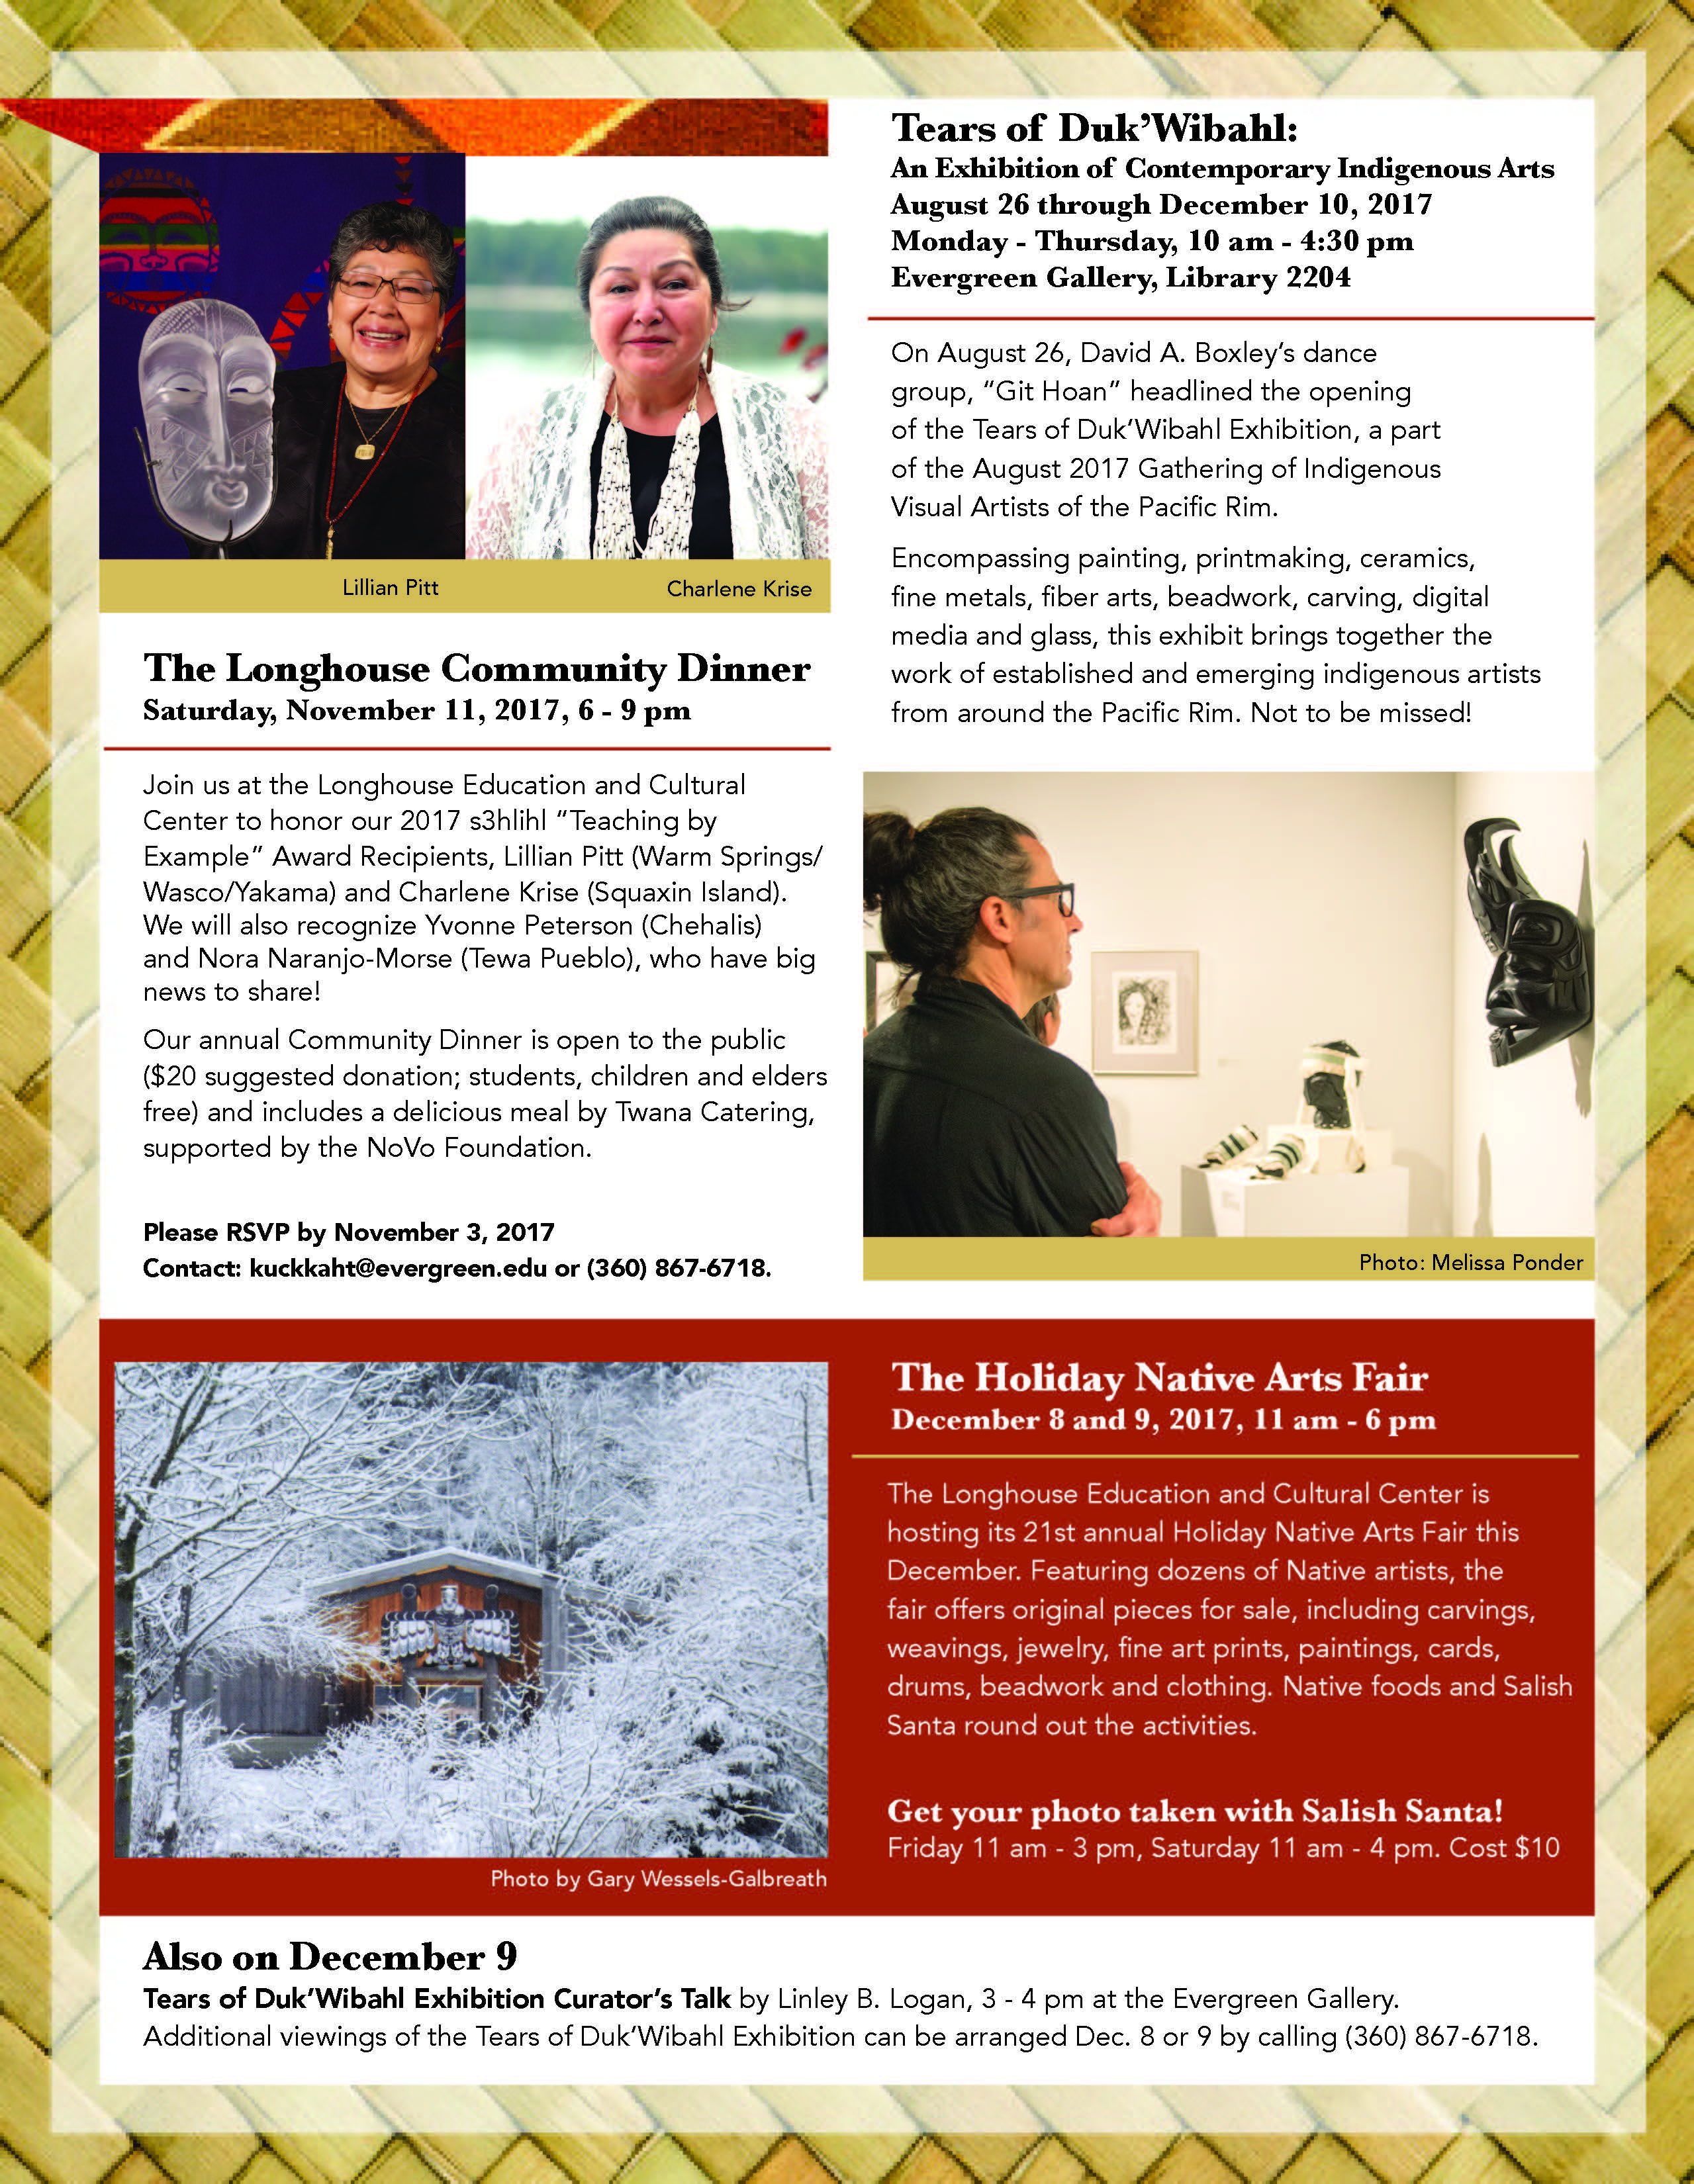 Longhouse Education and Cultural Center October 2017 update. Page two with details about the Tears of Duk'Wibahl Exhibition, Community Dinner, and Holiday Native Arts Fair.